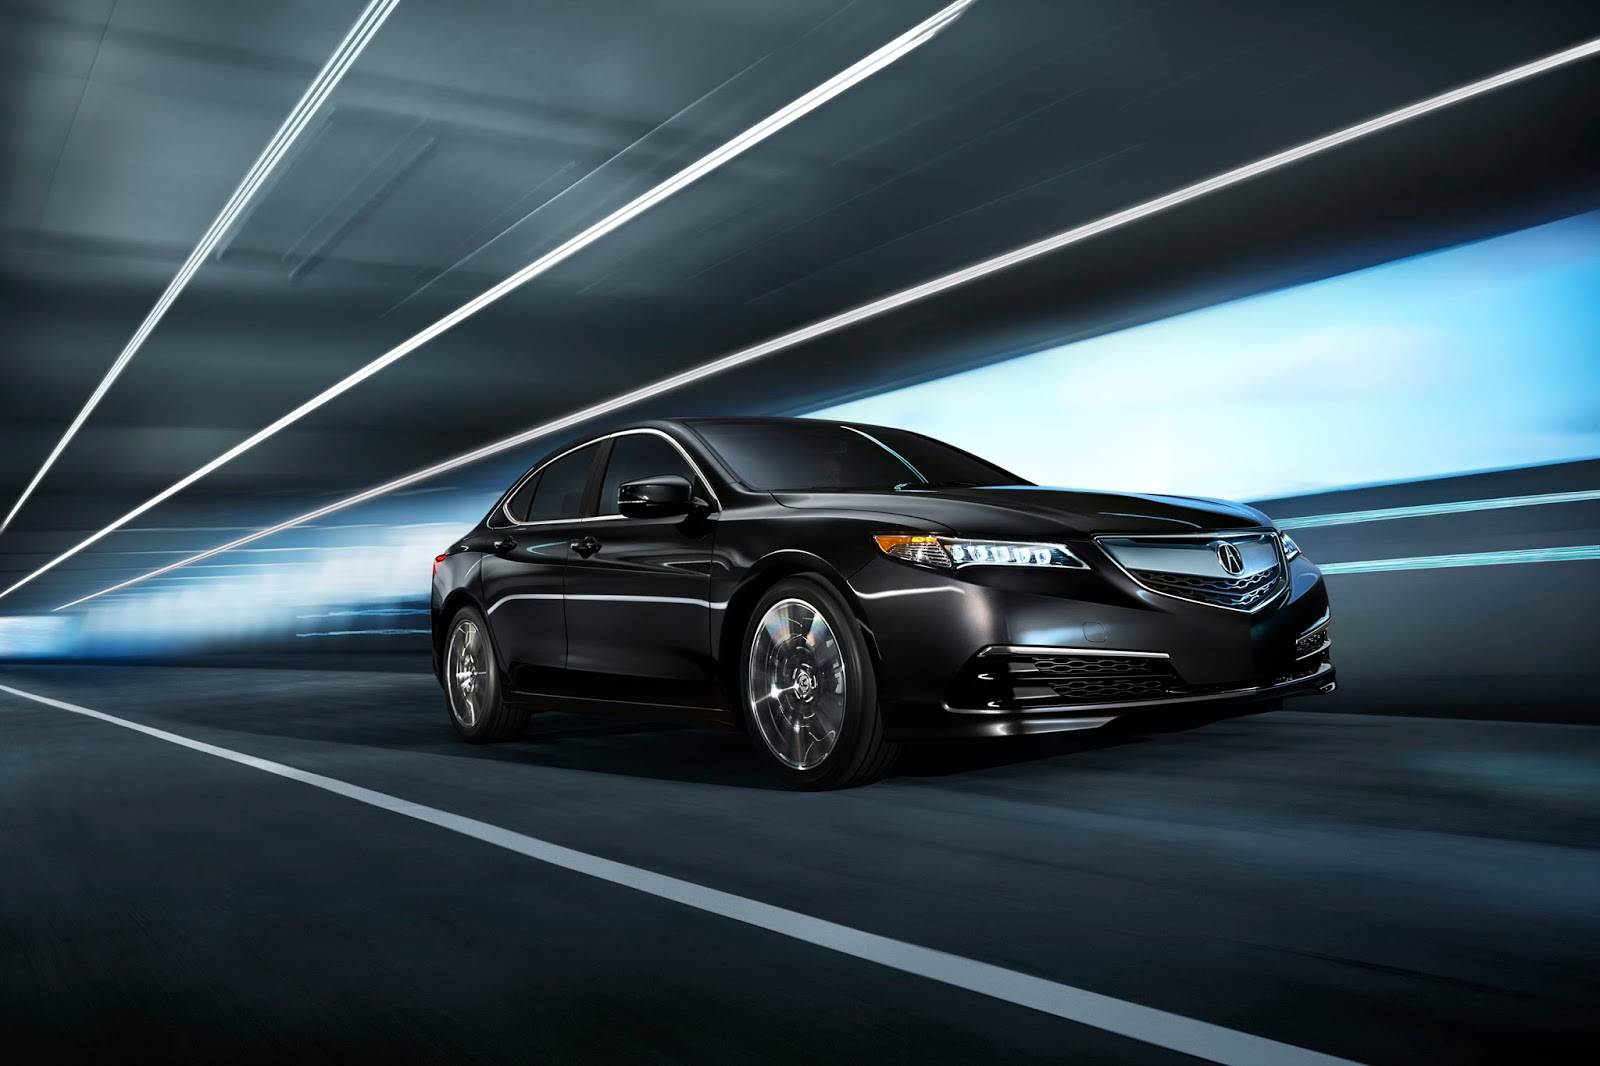 2014 - [Acura] TLX - Page 2 Acura-2015-TLX-24